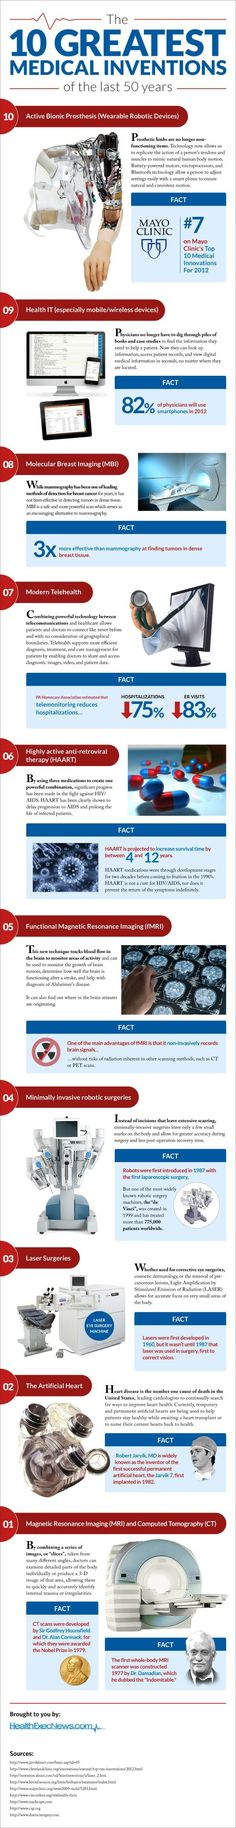 10 greatest medical inventions - #medical #infographic